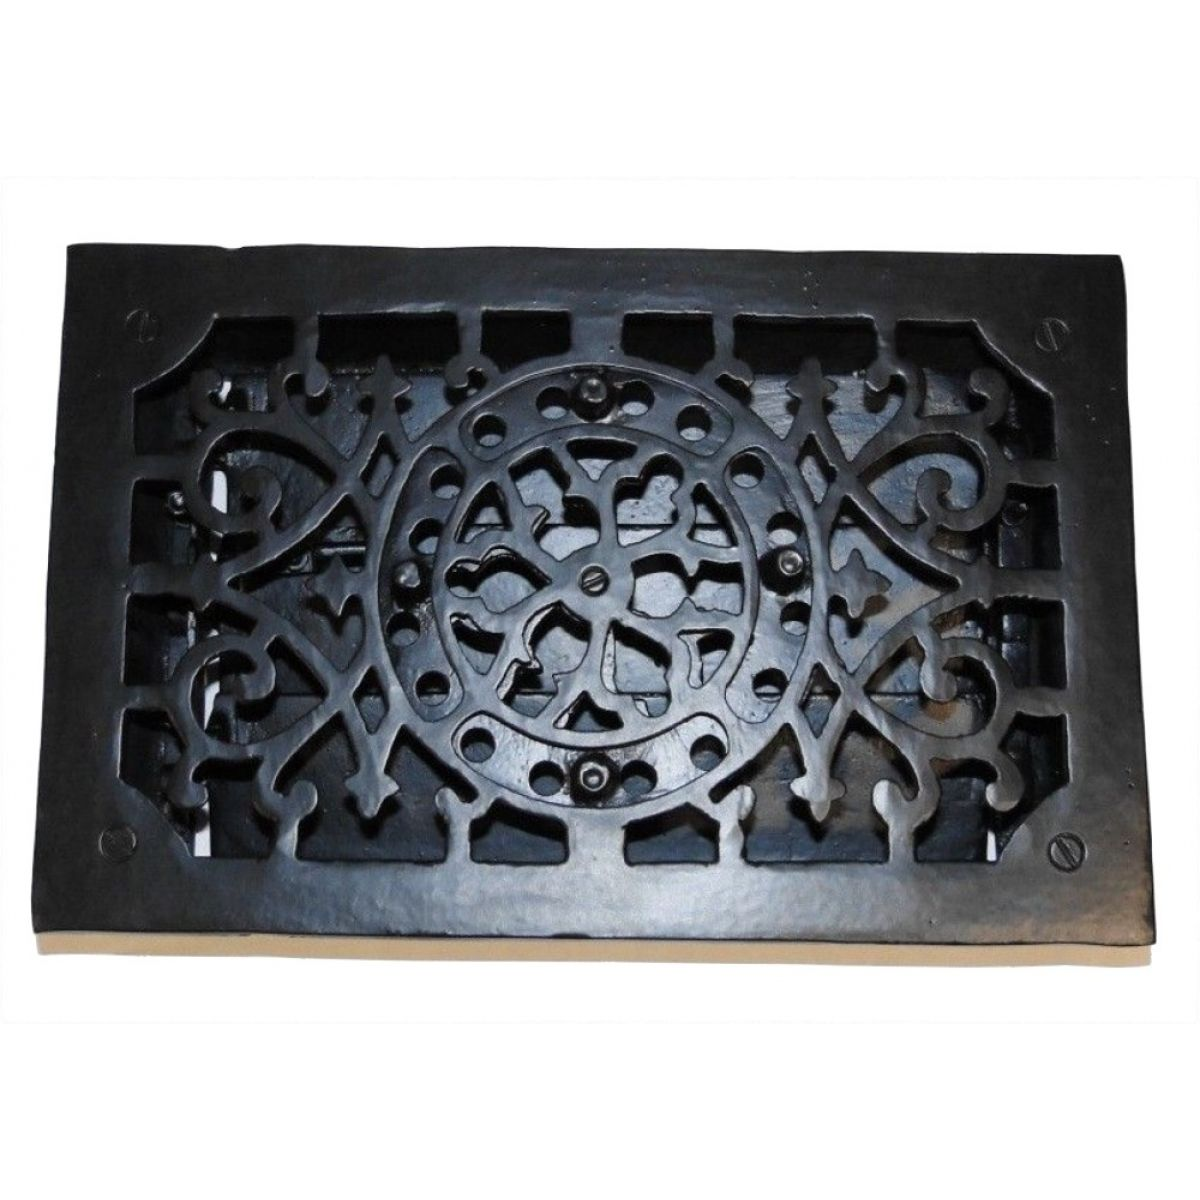 RECTANGULAR Cast Iron Floor Register Heat Grate Antique